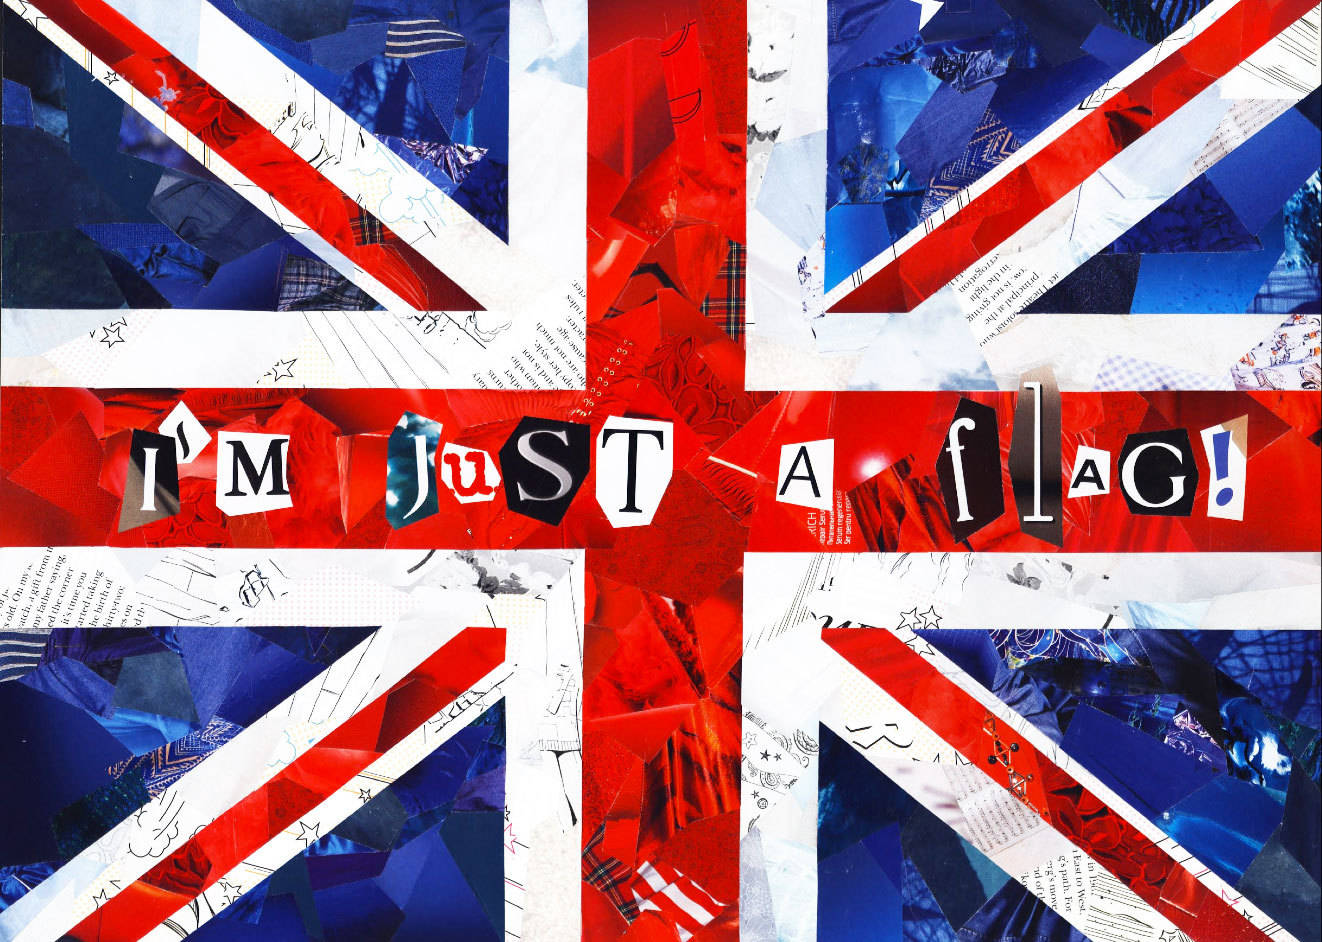 I`m Just a Flag!, collage